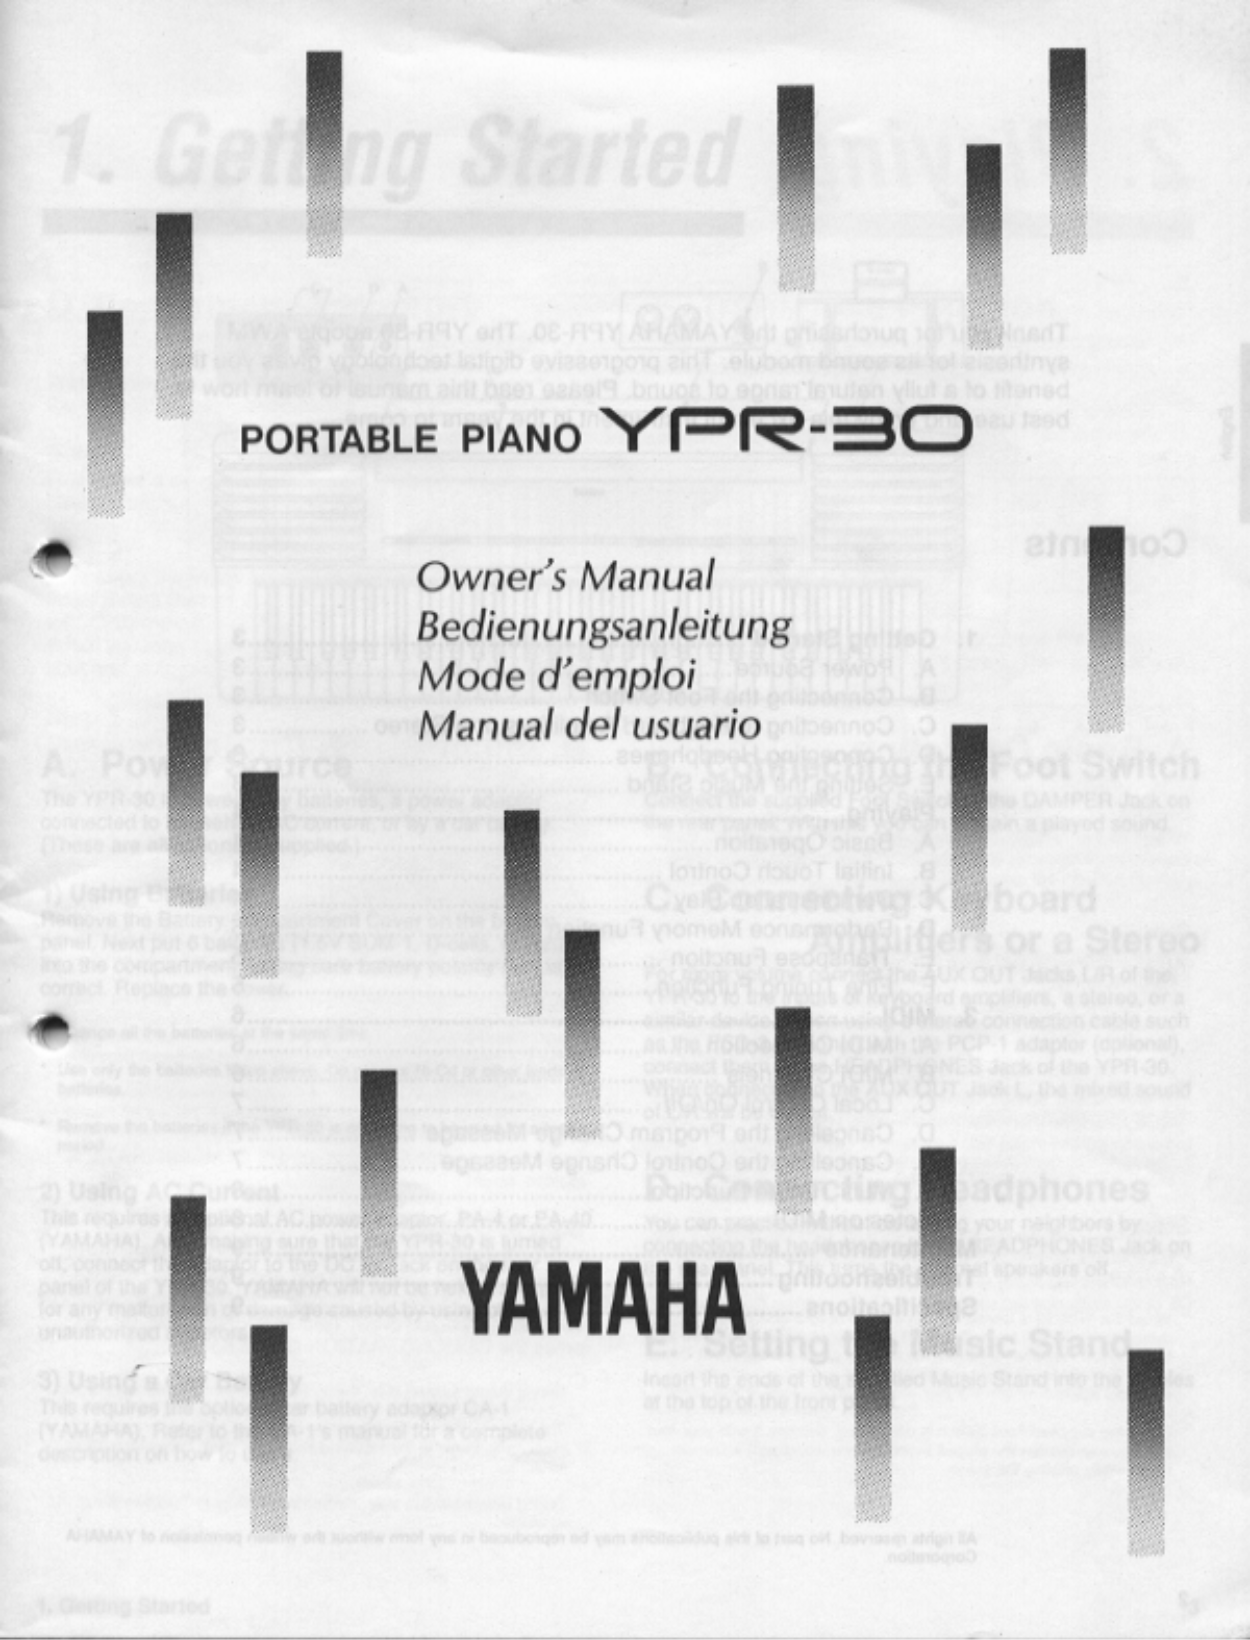 Download free pdf for Yamaha YPR-8 Music Keyboard manual